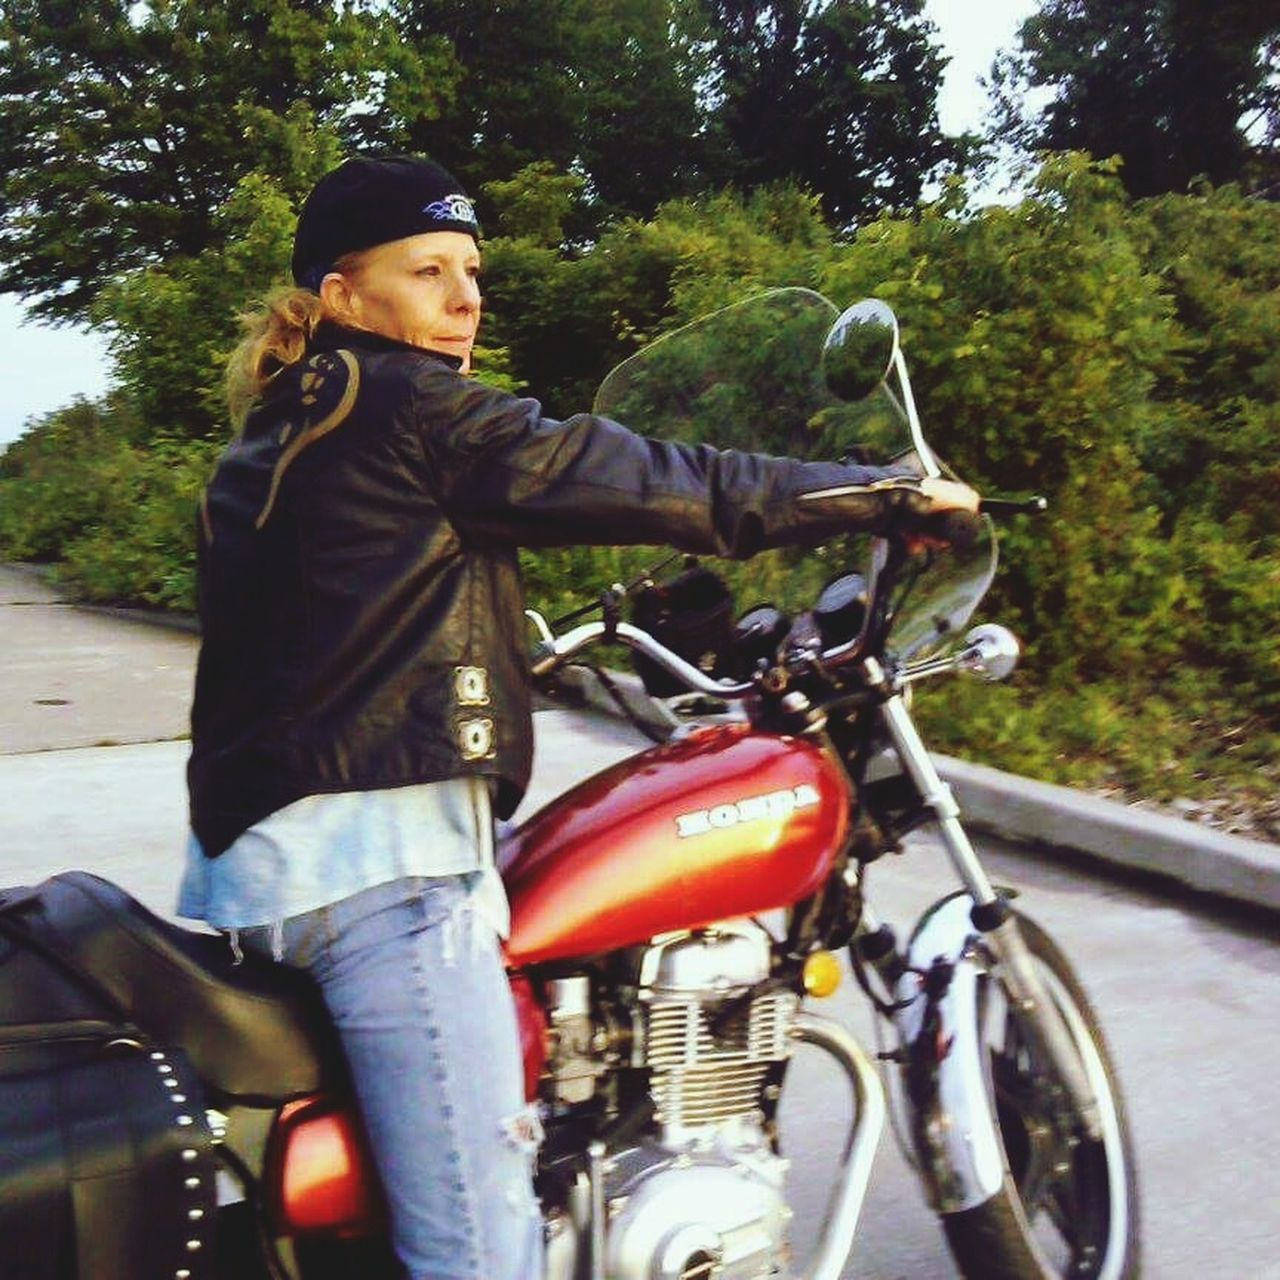 Motorcycle Biker Full Length Outdoors Lake Life One Woman Only Leisure Activity Happy Day Trees And Bushes Ginger Girl